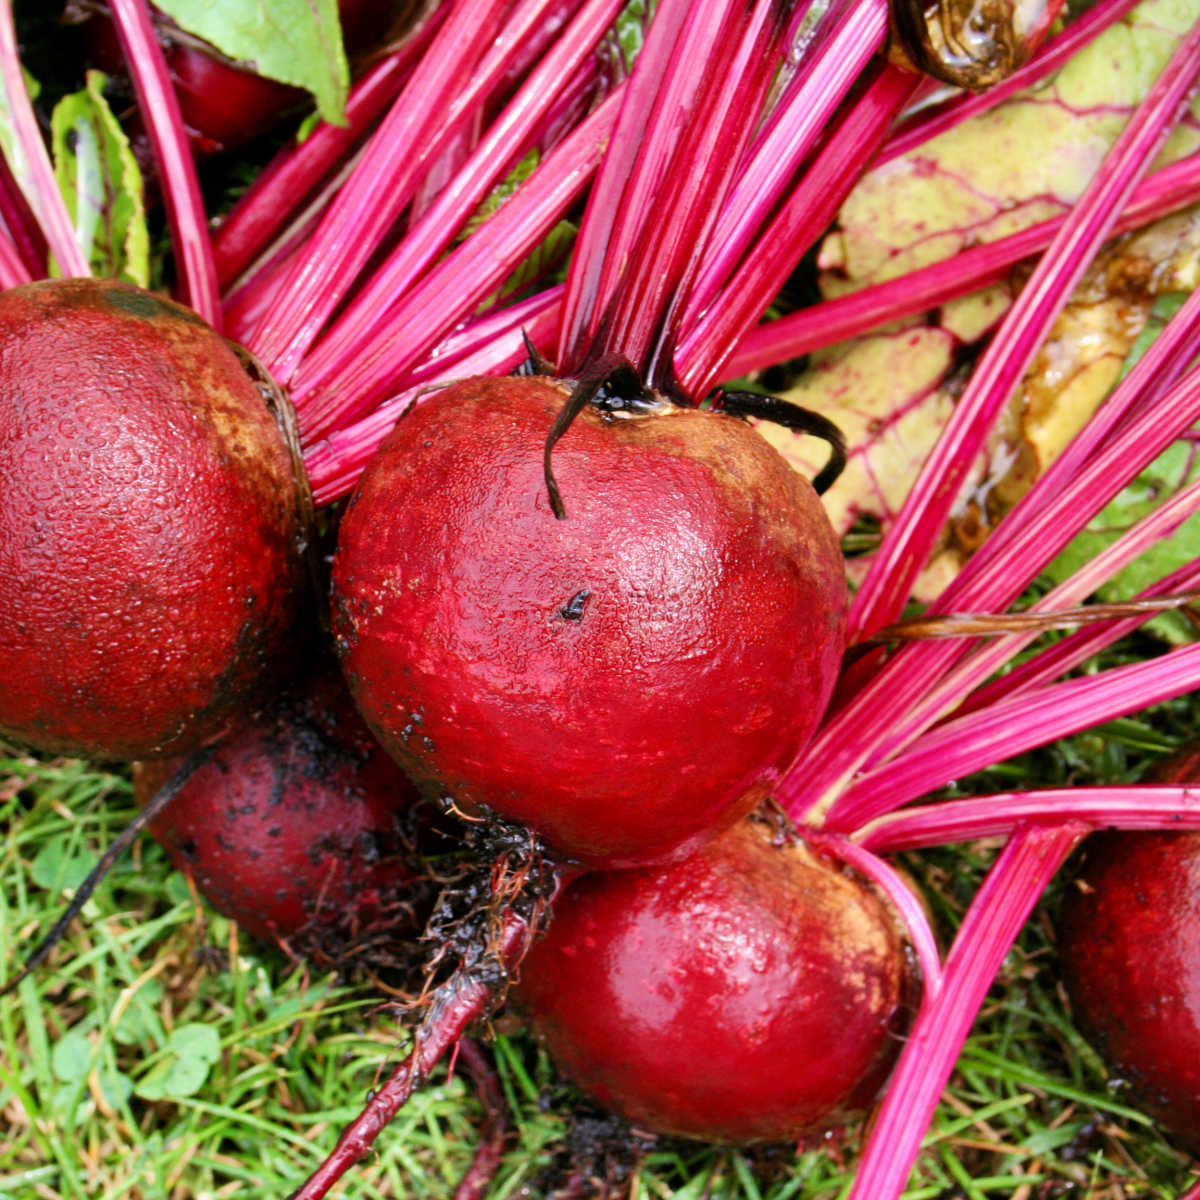 fresh beets from the garden on the lawn after being washed